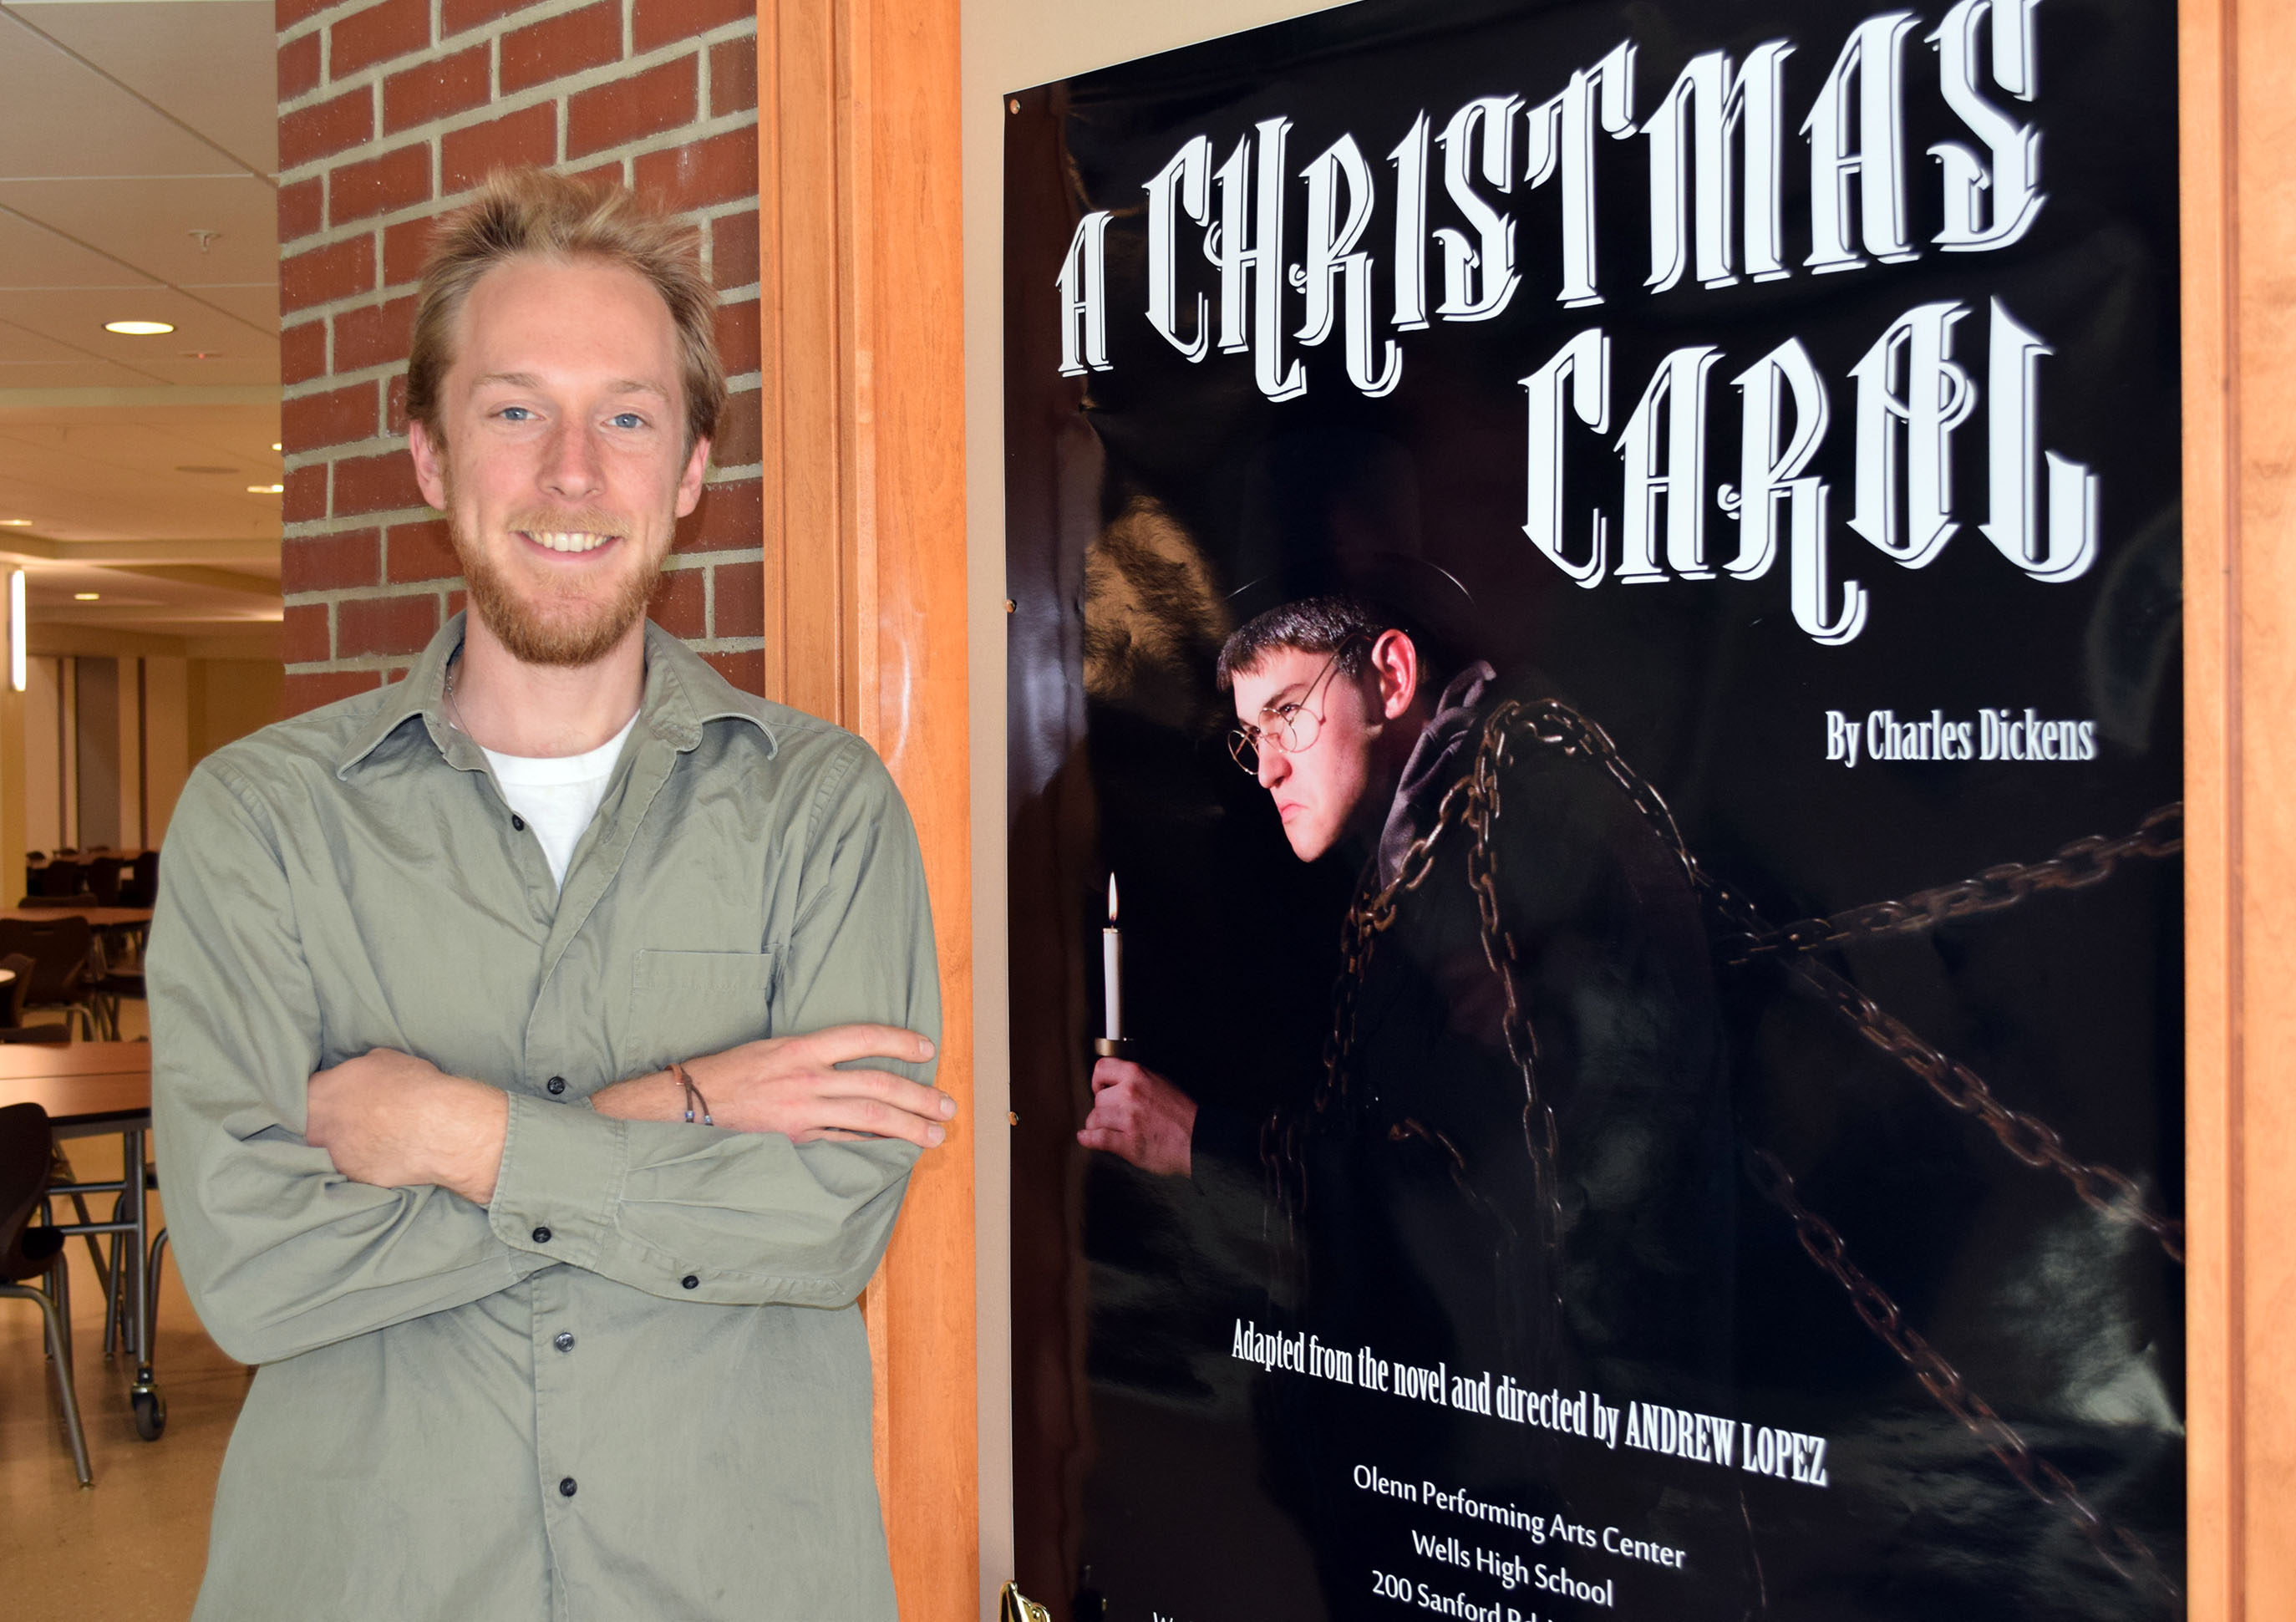 SUBMITTED PHOTO/Courtesy of Reg BennettAssistant Director David Littlefield is pictured next to a poster for